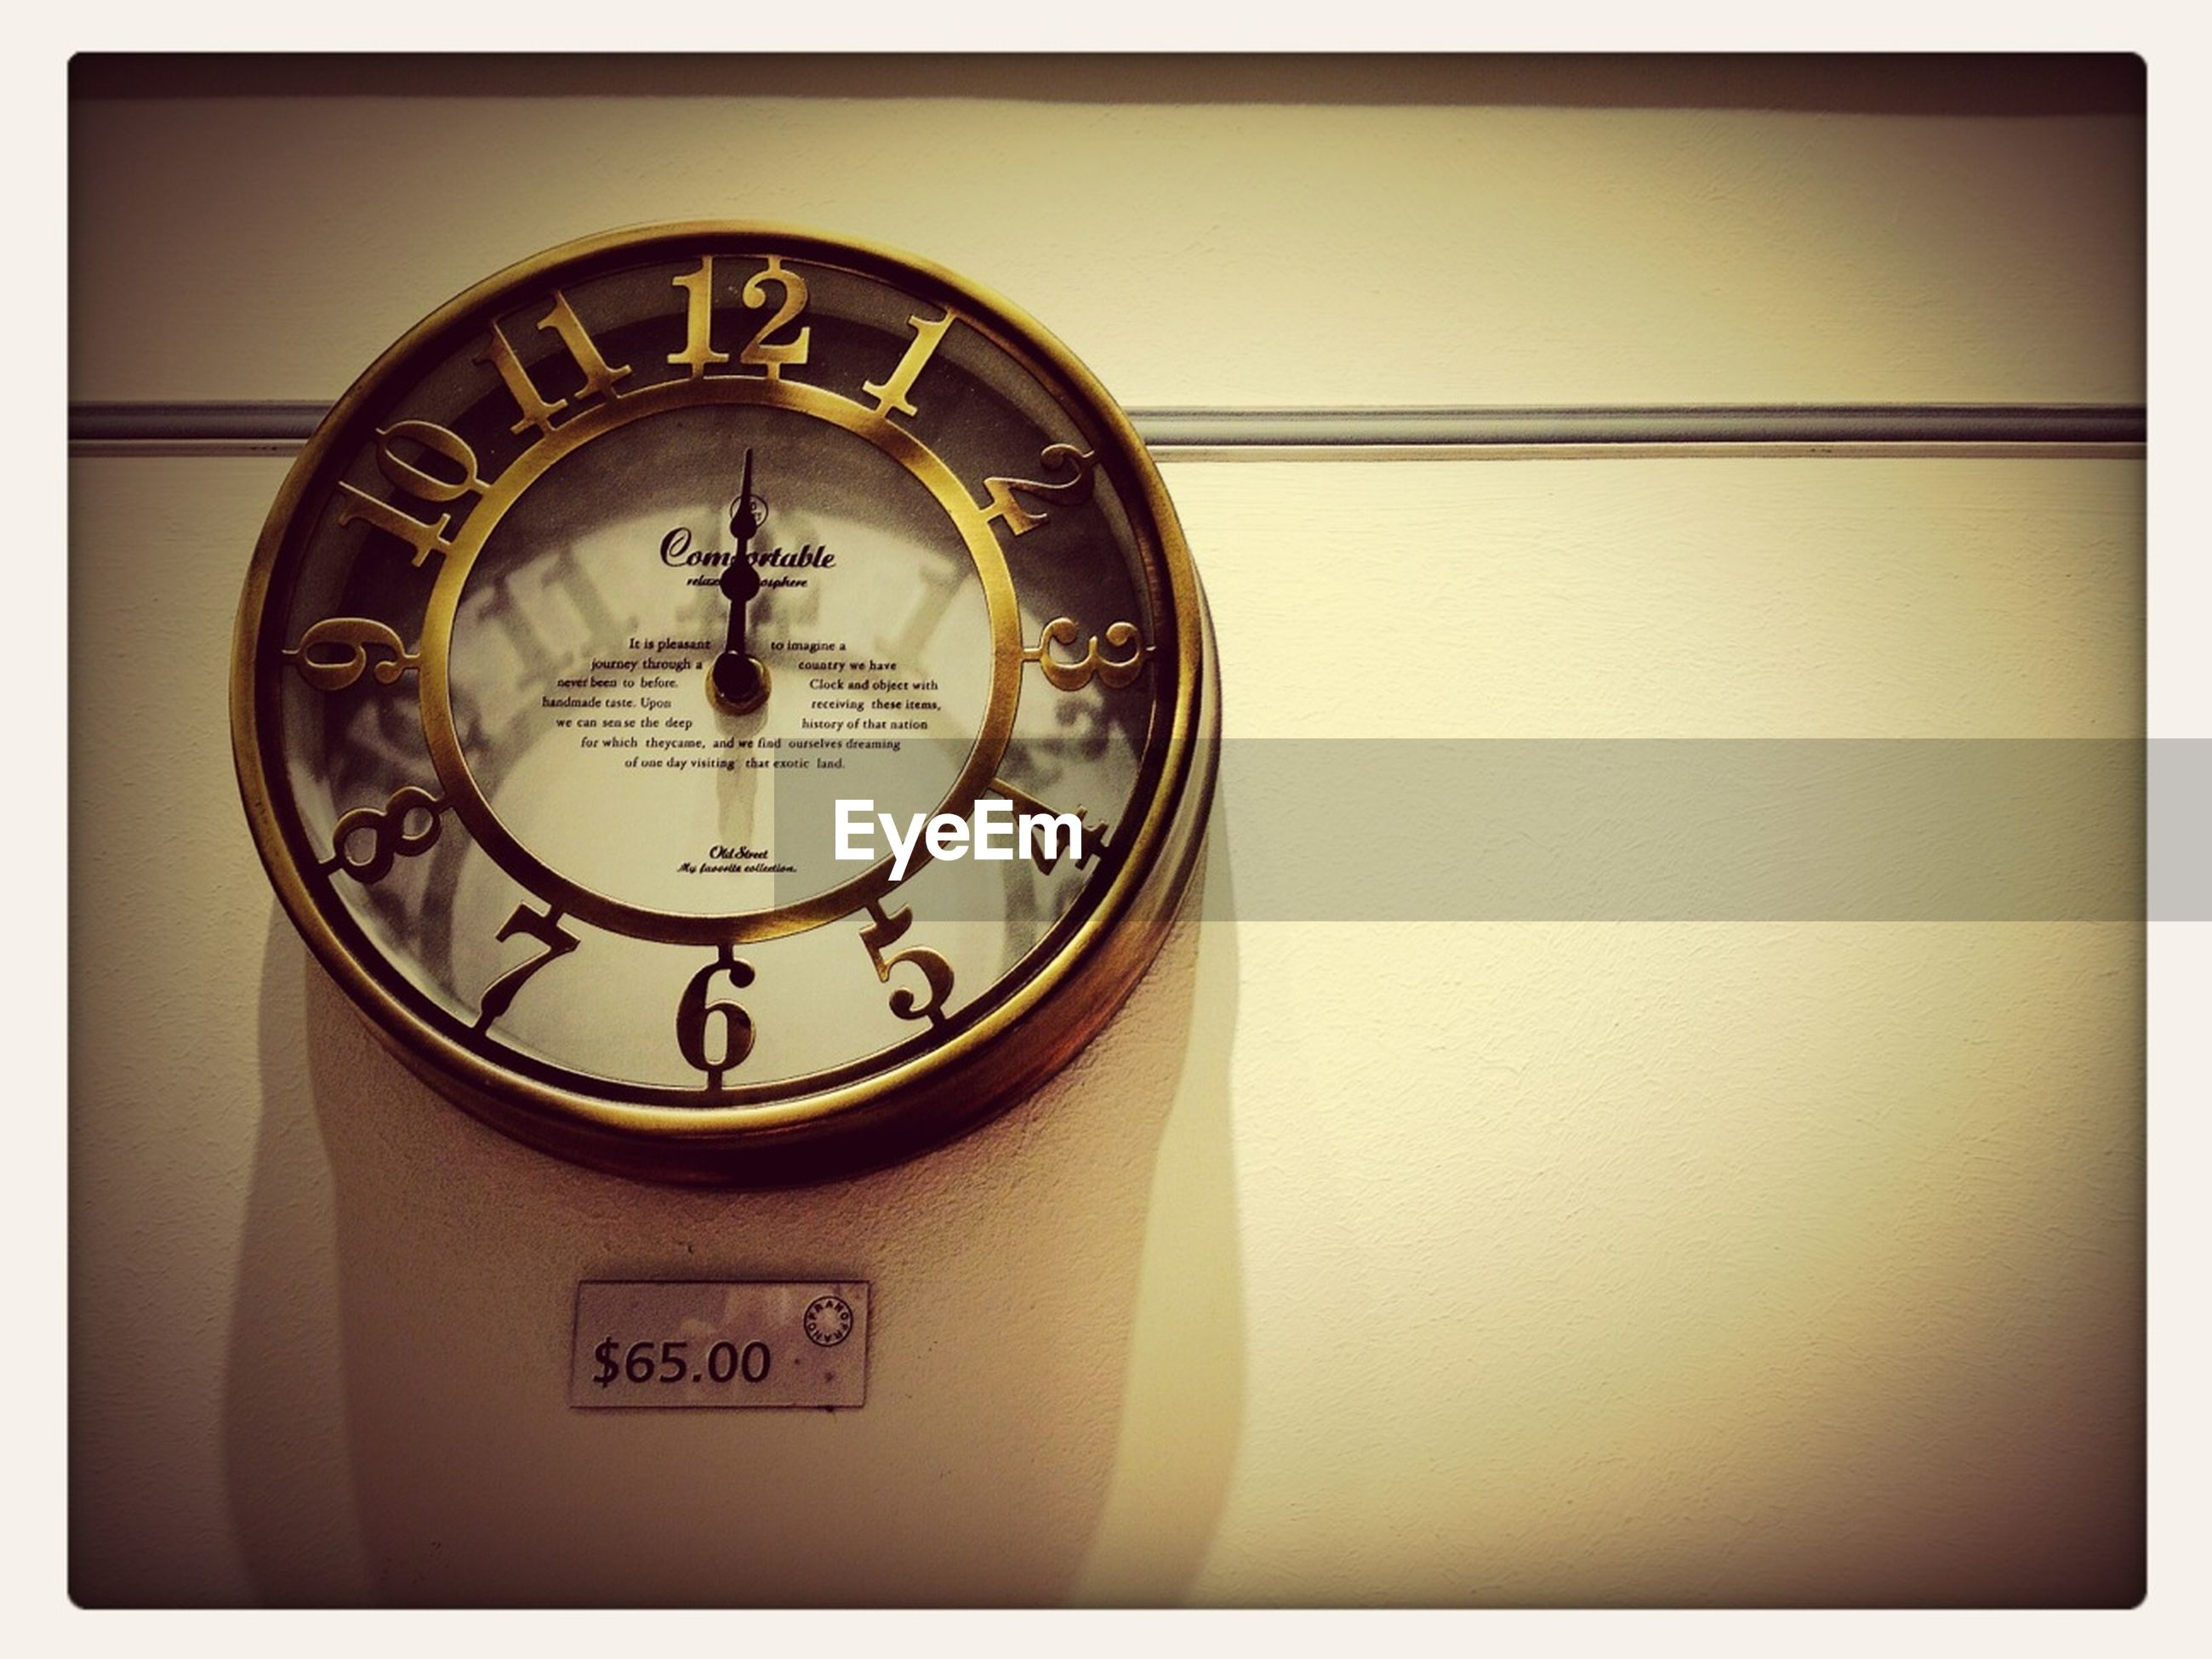 indoors, clock, time, number, transfer print, clock face, communication, old-fashioned, close-up, accuracy, technology, auto post production filter, wall clock, wall - building feature, low angle view, circle, retro styled, minute hand, text, single object